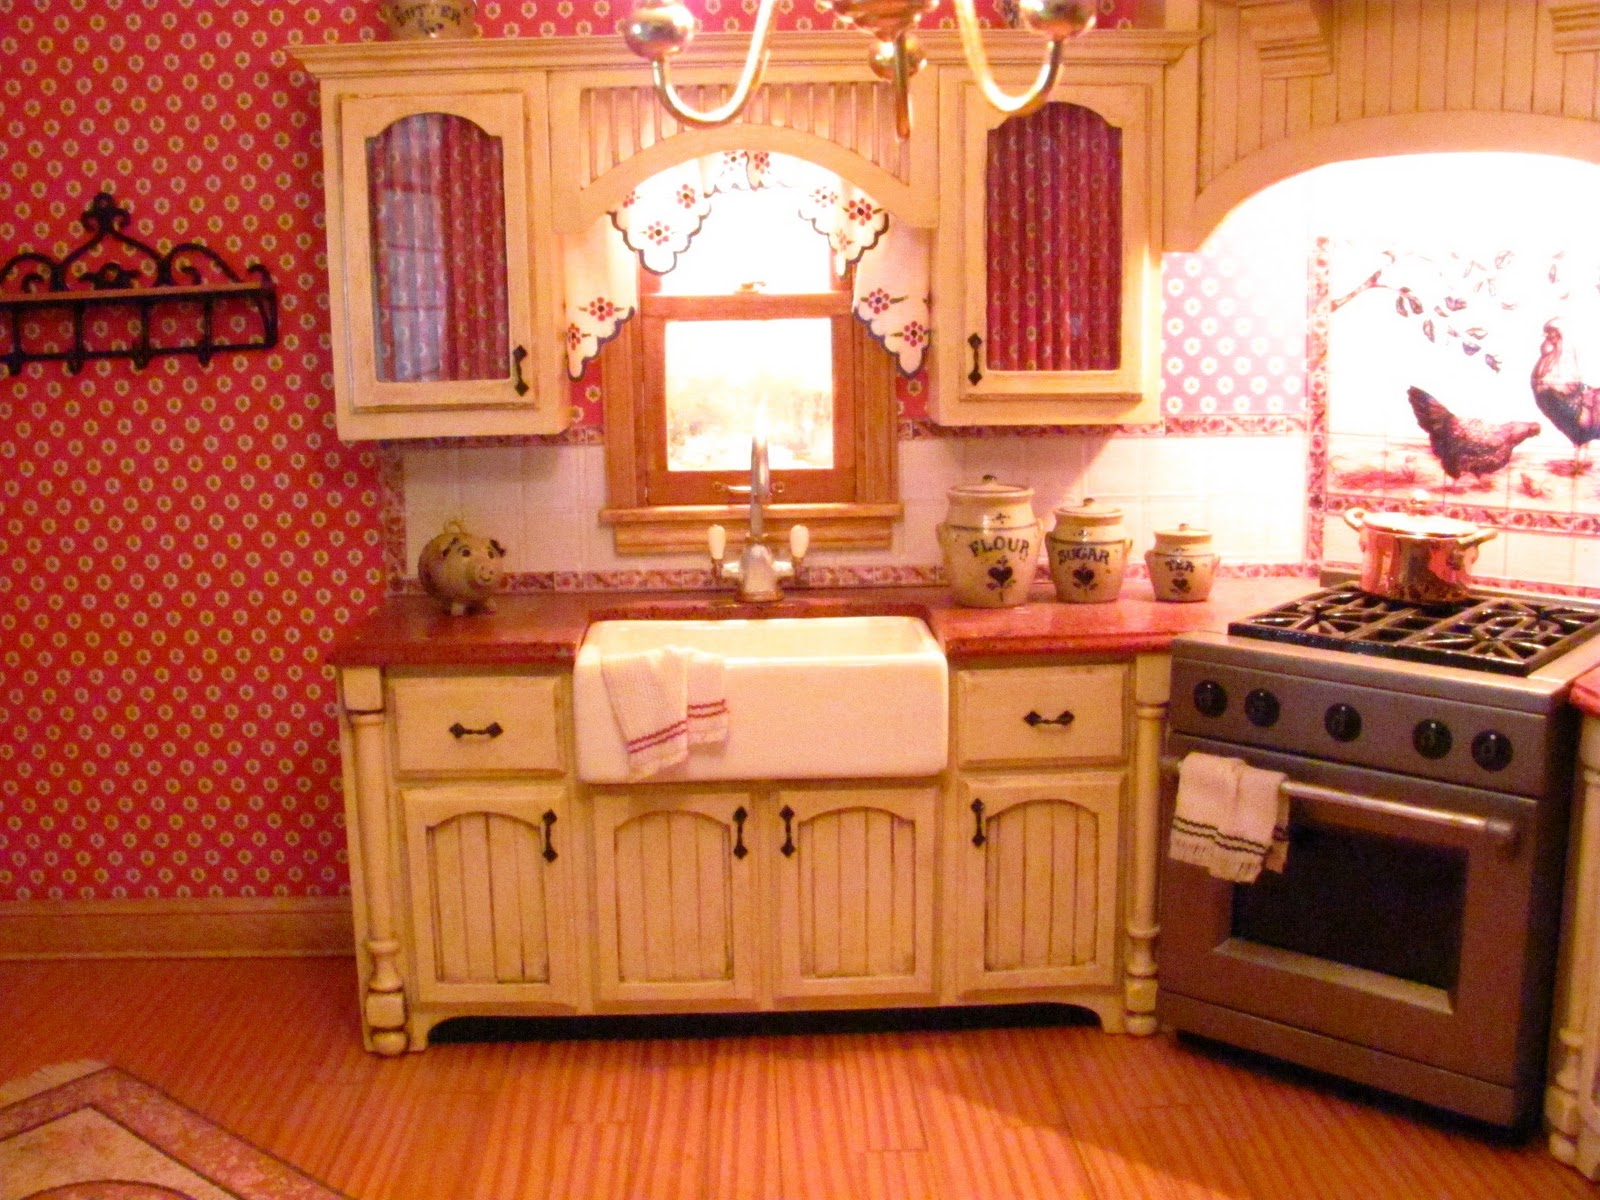 kitchen cabinets how to make contemporary kitchen cabinets from mat board - Dollhouse Kitchen